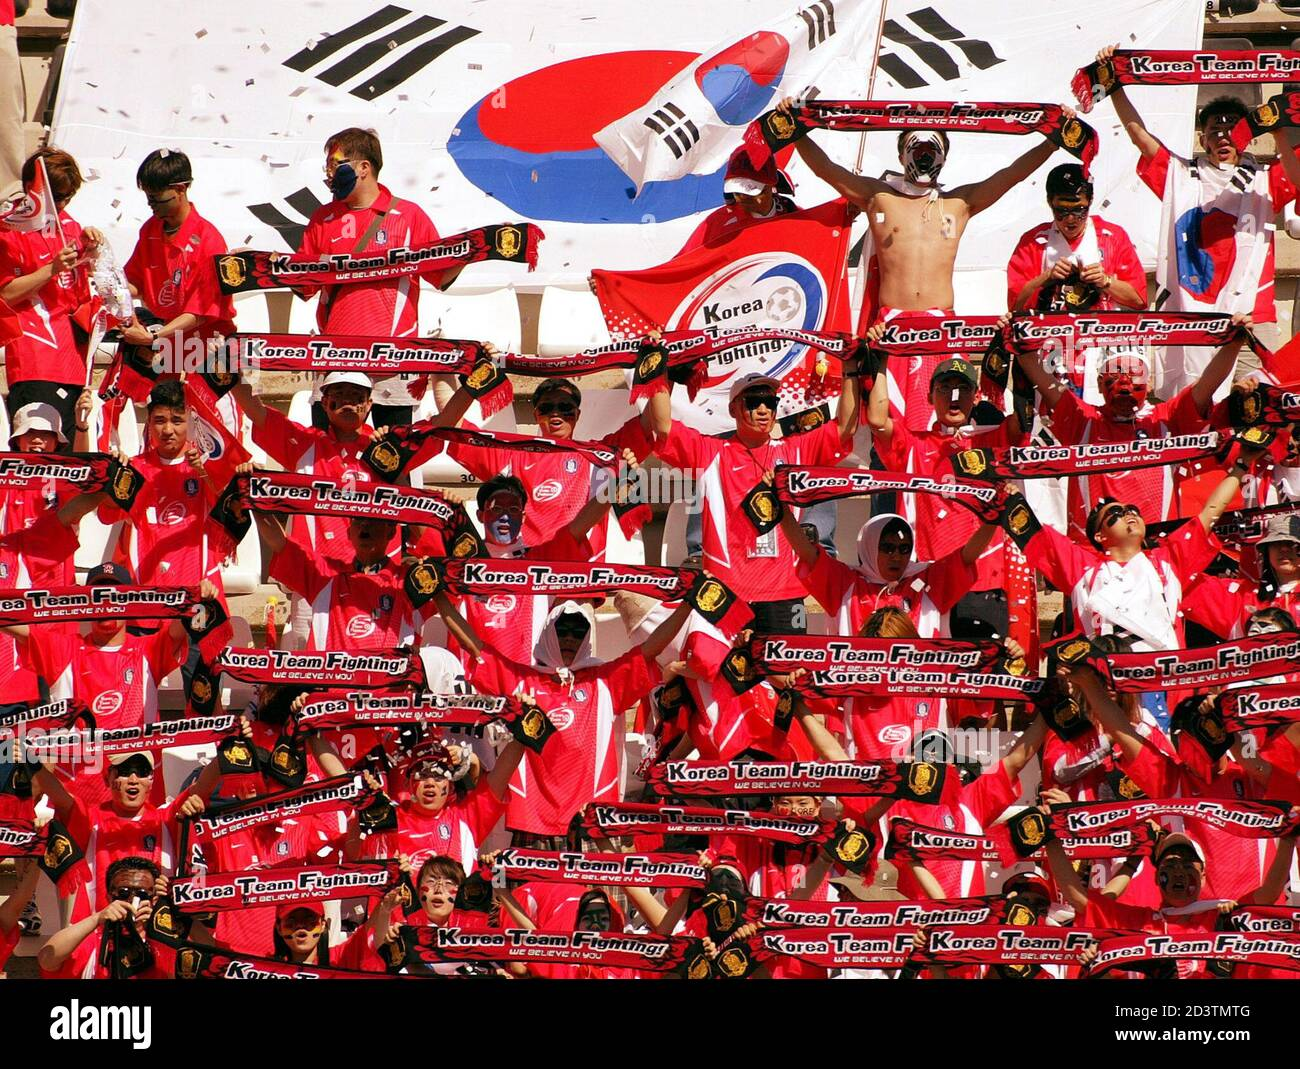 South Korean supporters cheer their team during a friendly soccer match against Finland March 20, 2002 in Cartagena in Eastern Spain. The teams of Korea and Finland are training on the Eastern Spanish coast for the upcoming World Cup. REUTERS/Desmond Boylan  DB Stock Photo